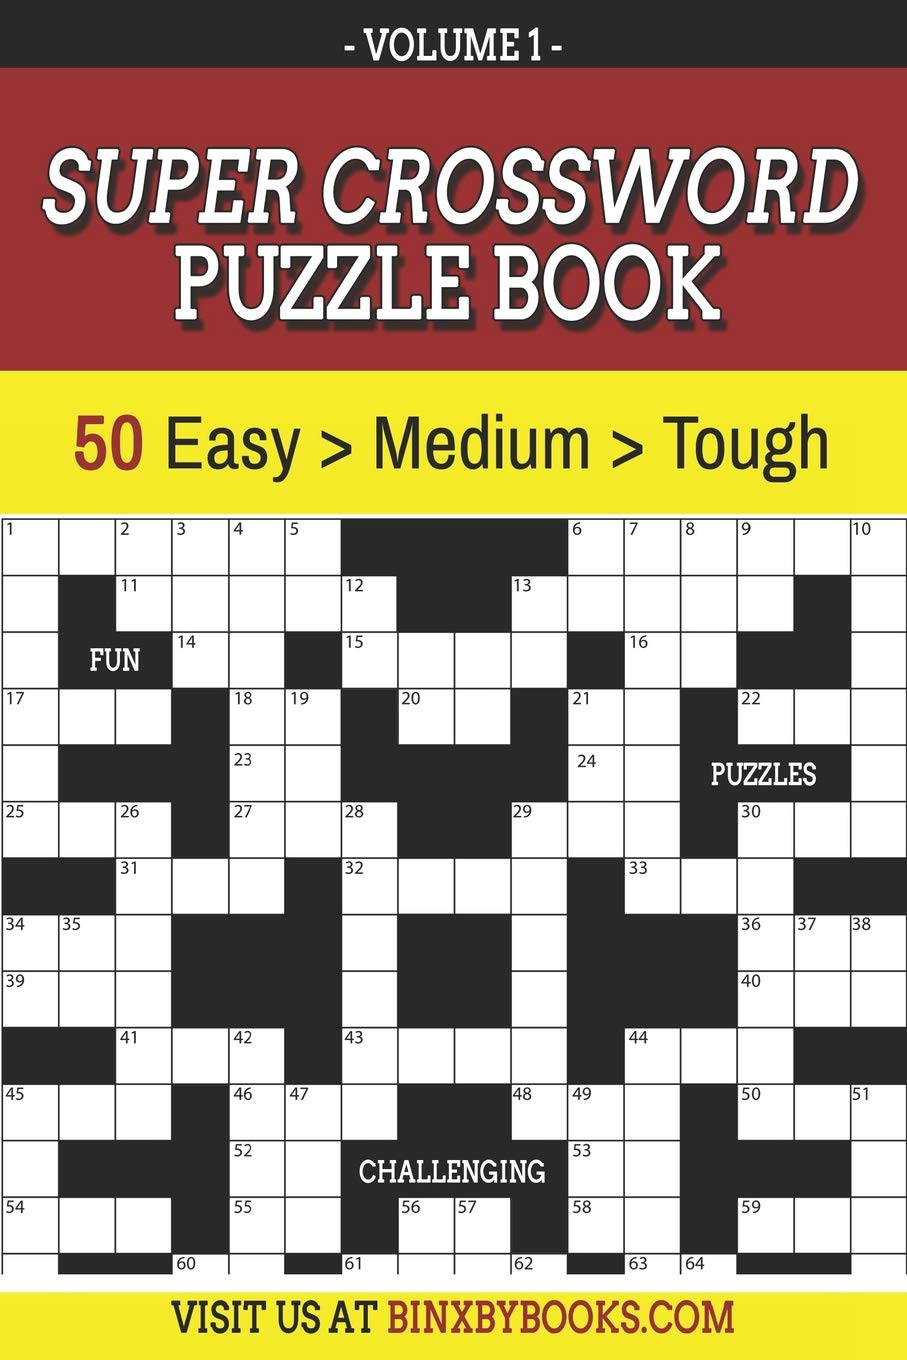 Amazon Com Super Crossword Puzzle Book Volume 1 50 Easy To Hard Puzzles For Adults 9781096242963 Furson Binxby Books